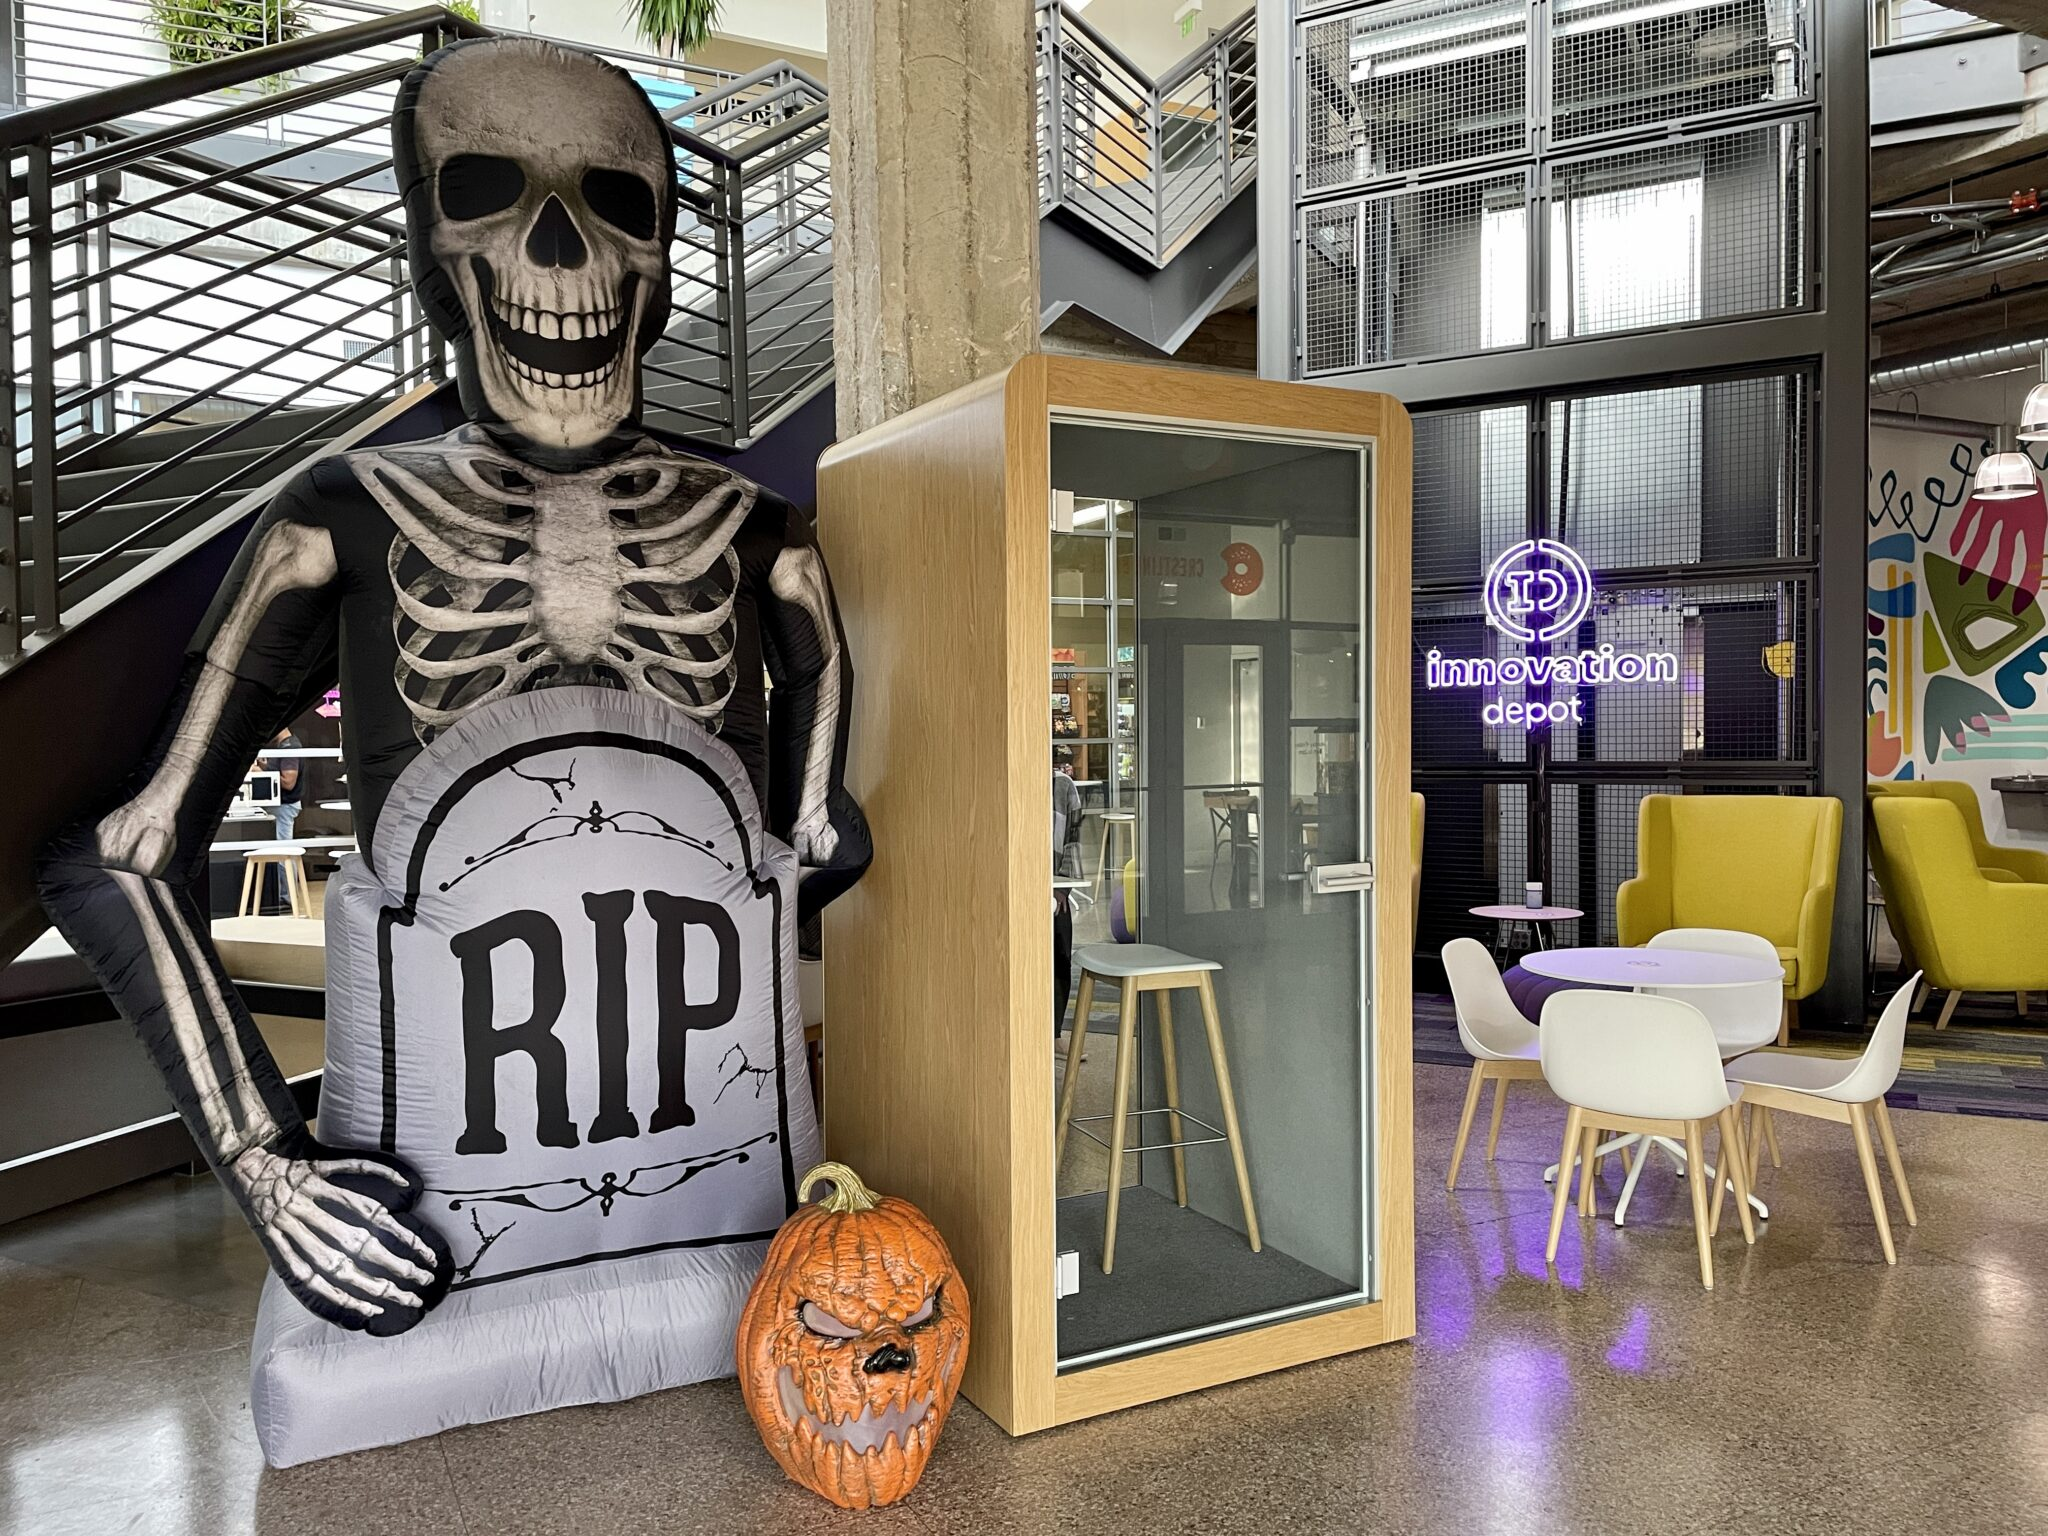 Get excited for Tech or Treat with Innovation Depot on Thursday, Oct. 28